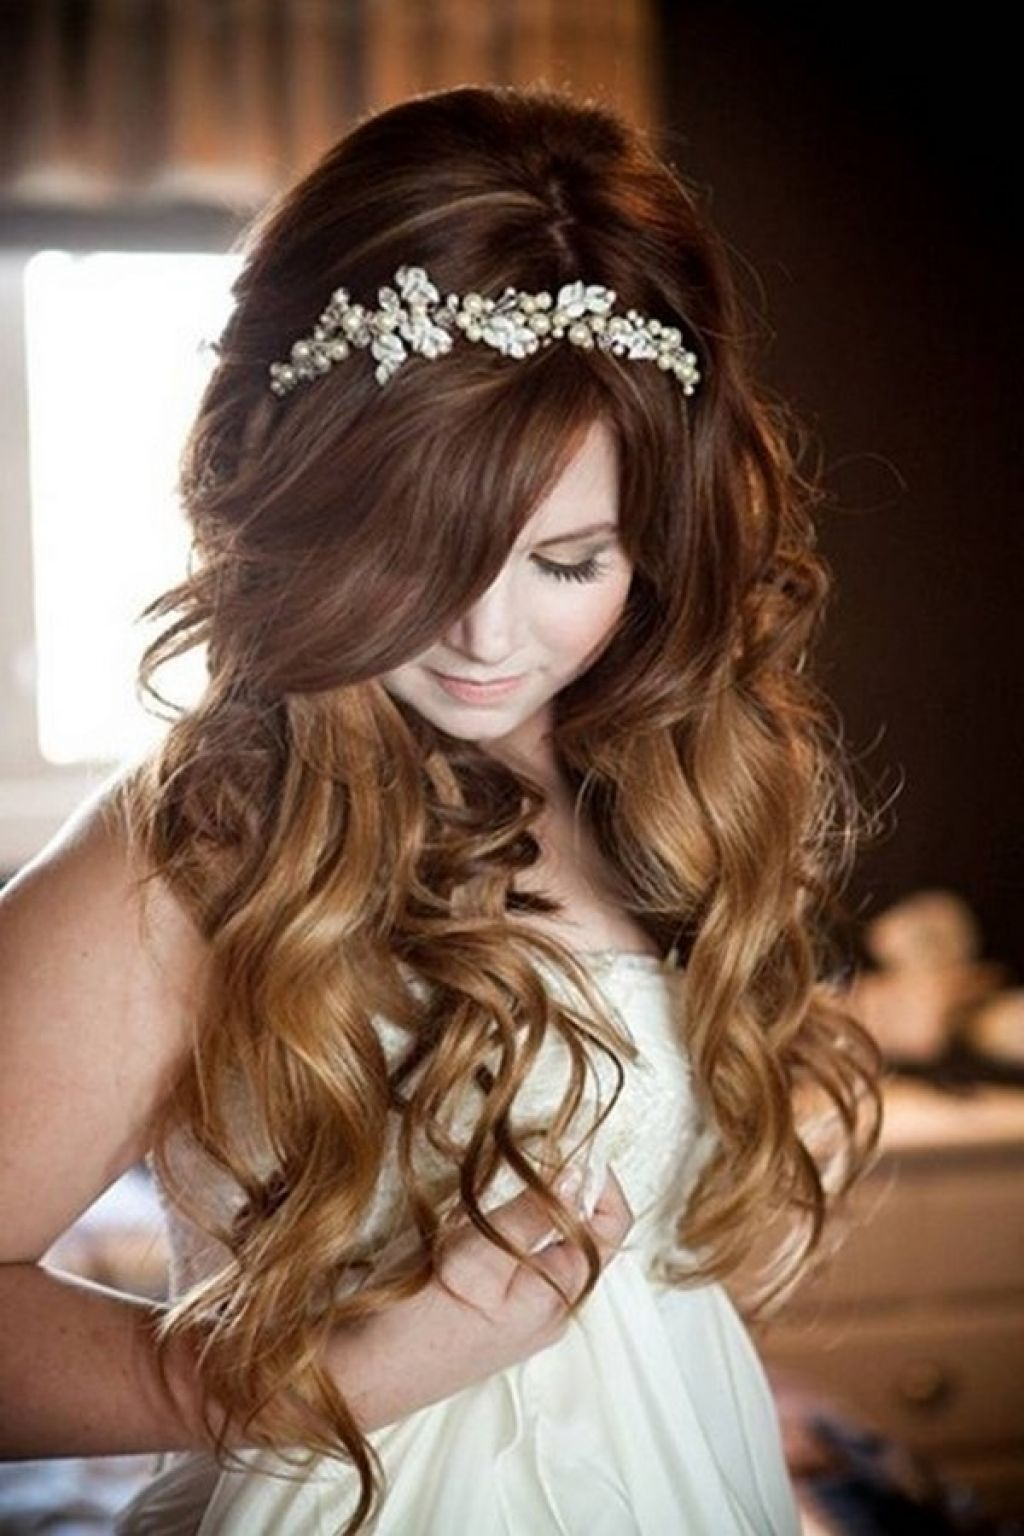 best haircuts for long hair 100 delightful prom hairstyles ideas haircuts design 1688 | wedding hairstyles for long hair